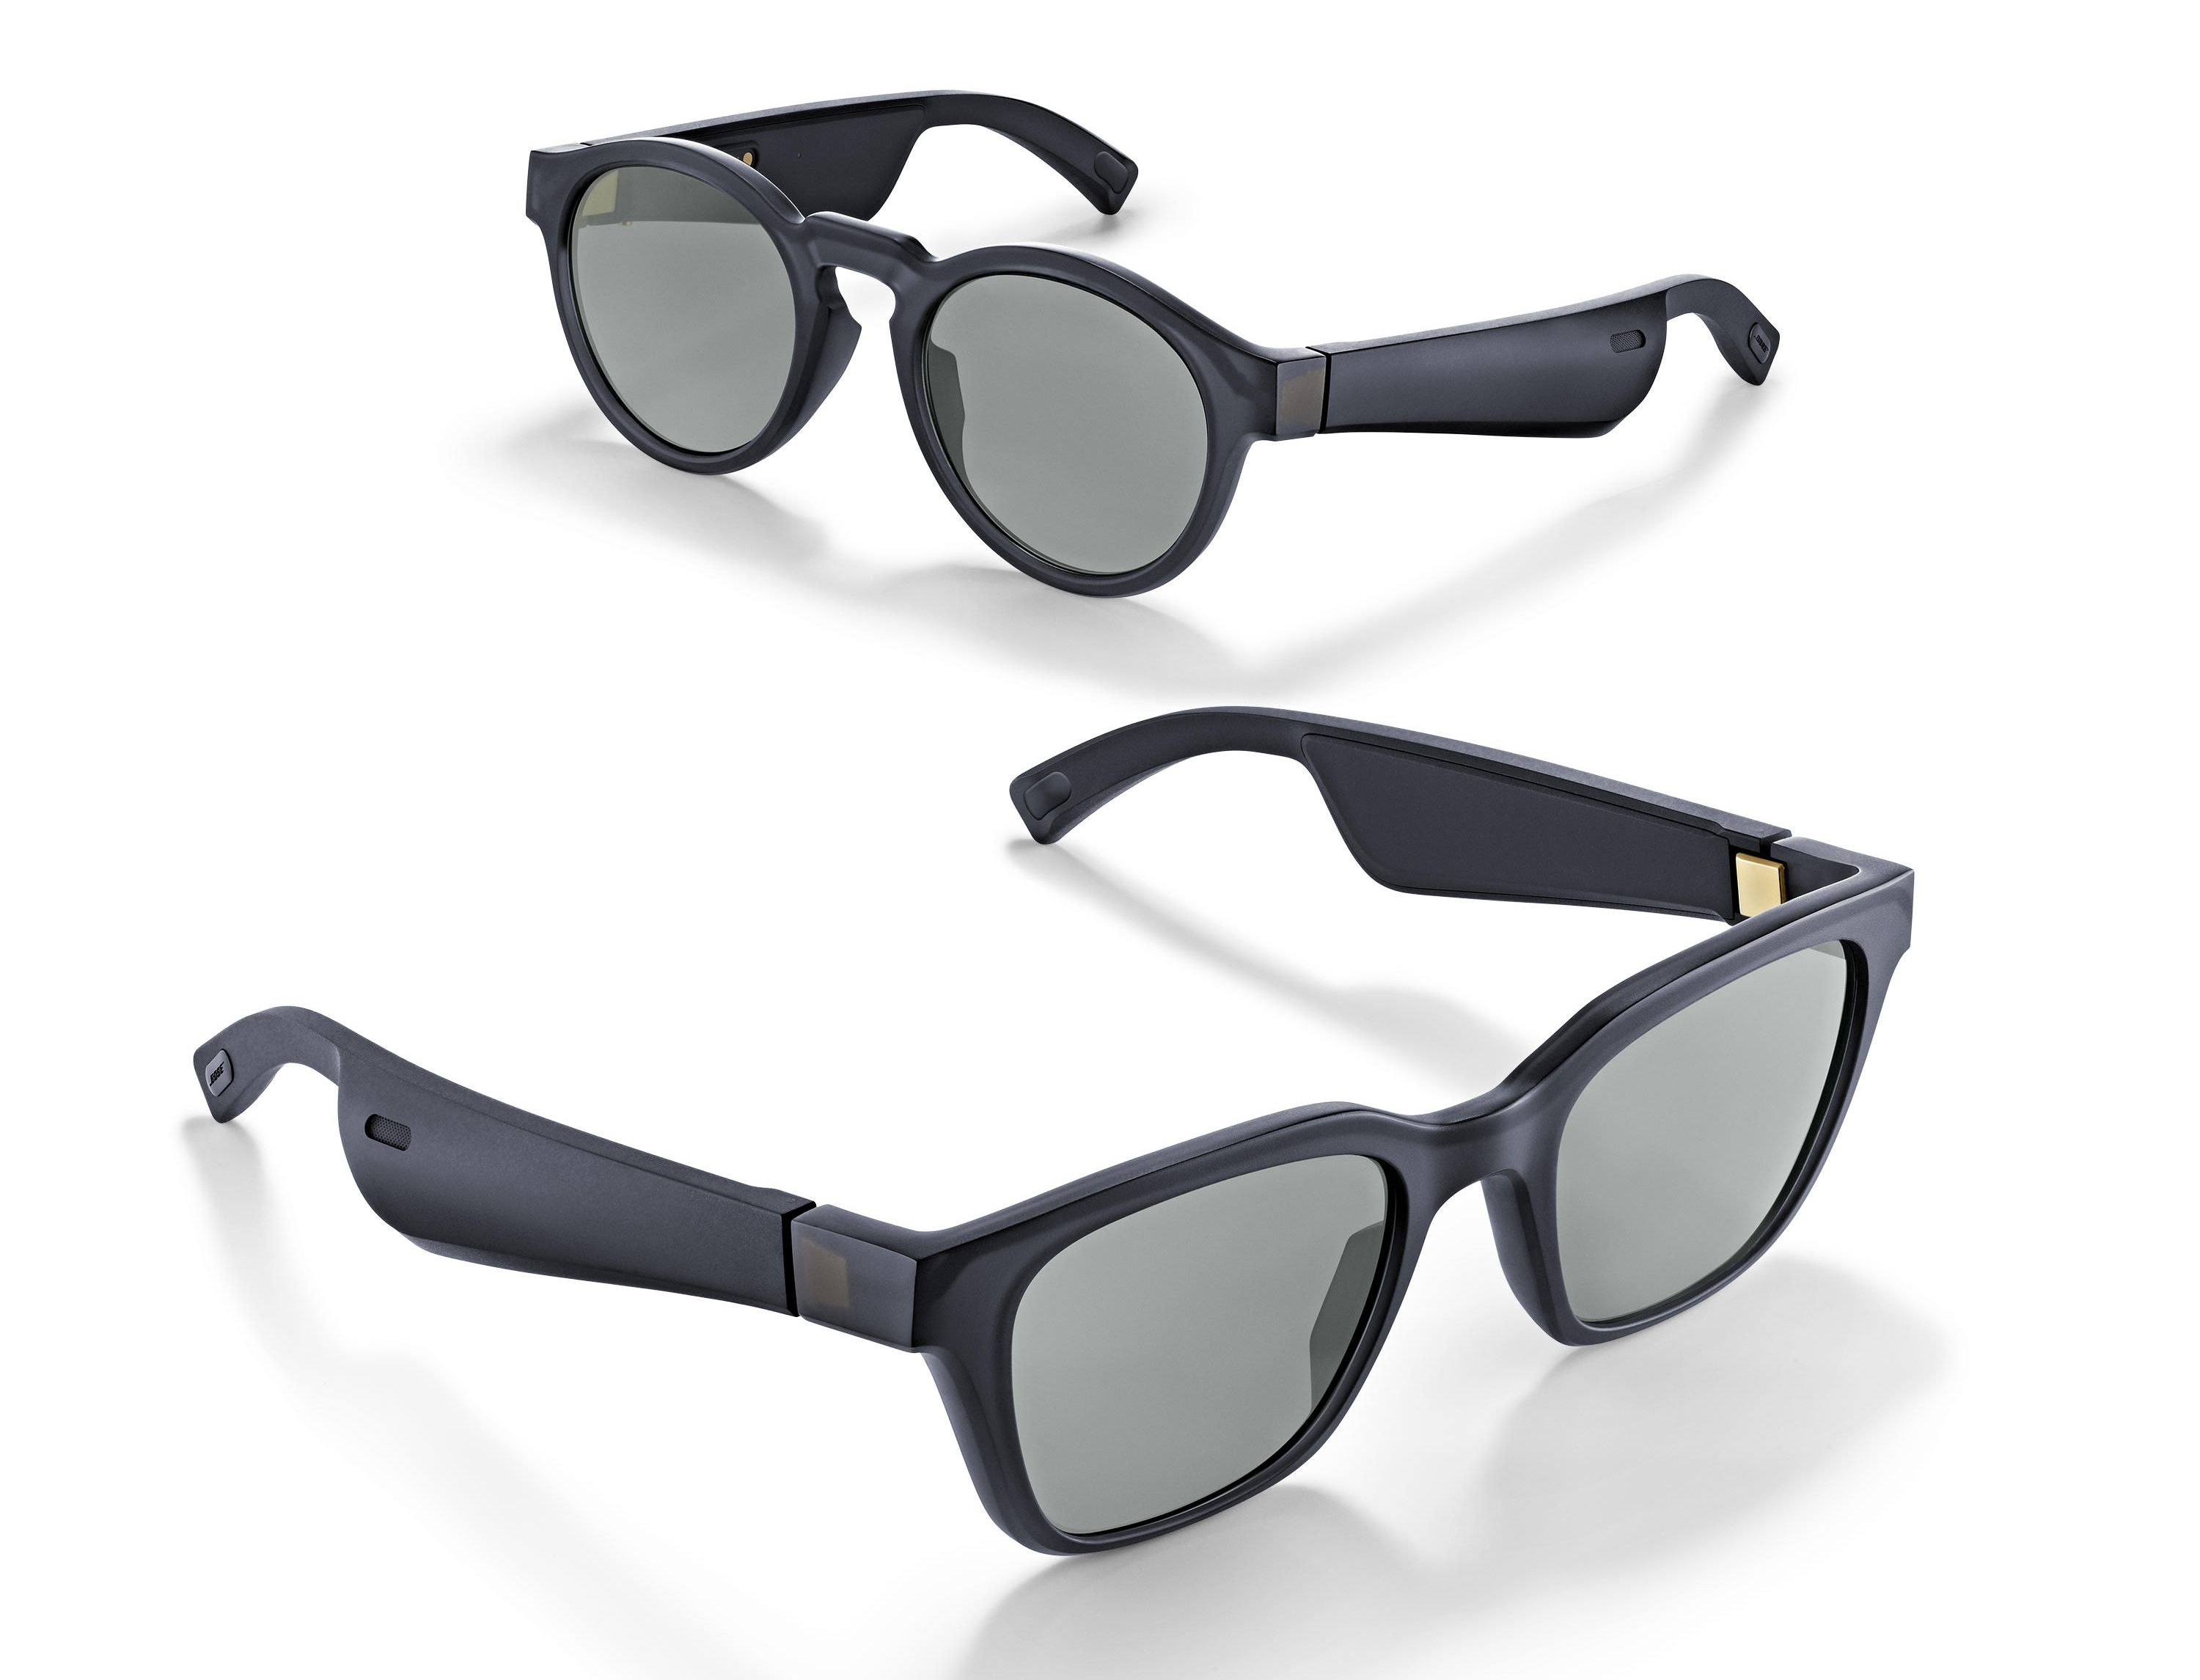 Bose Frames Is a Pair of Sunglasses With